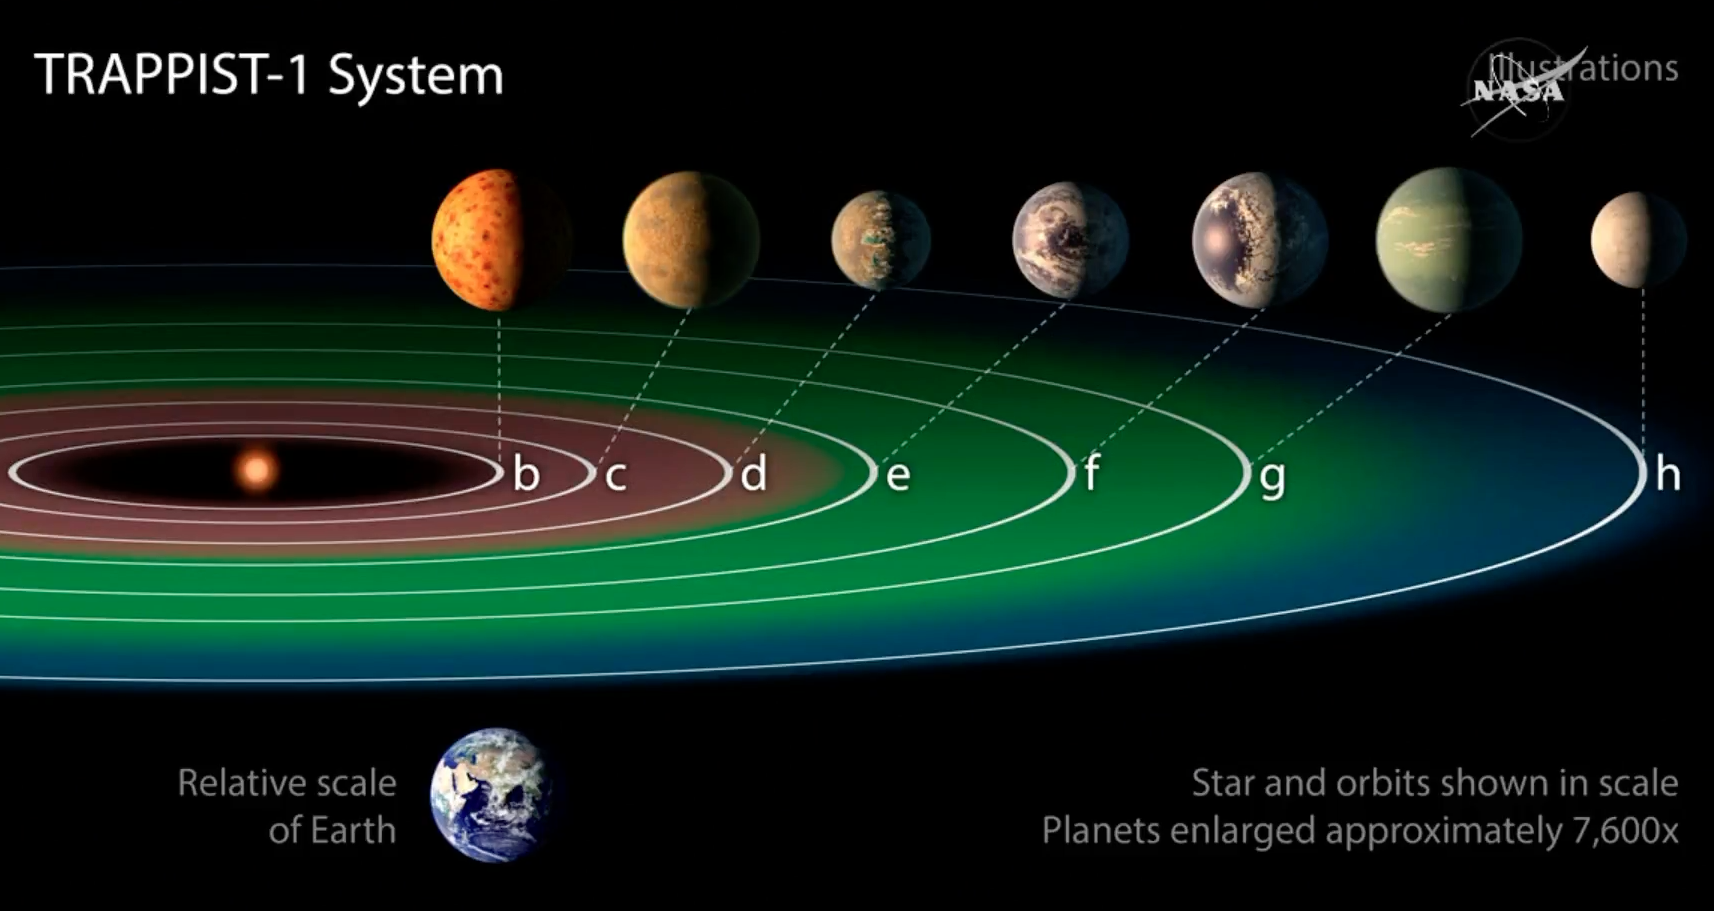 TRAPPIST-1 System... planets e, f, and g are the potentially habitable planets